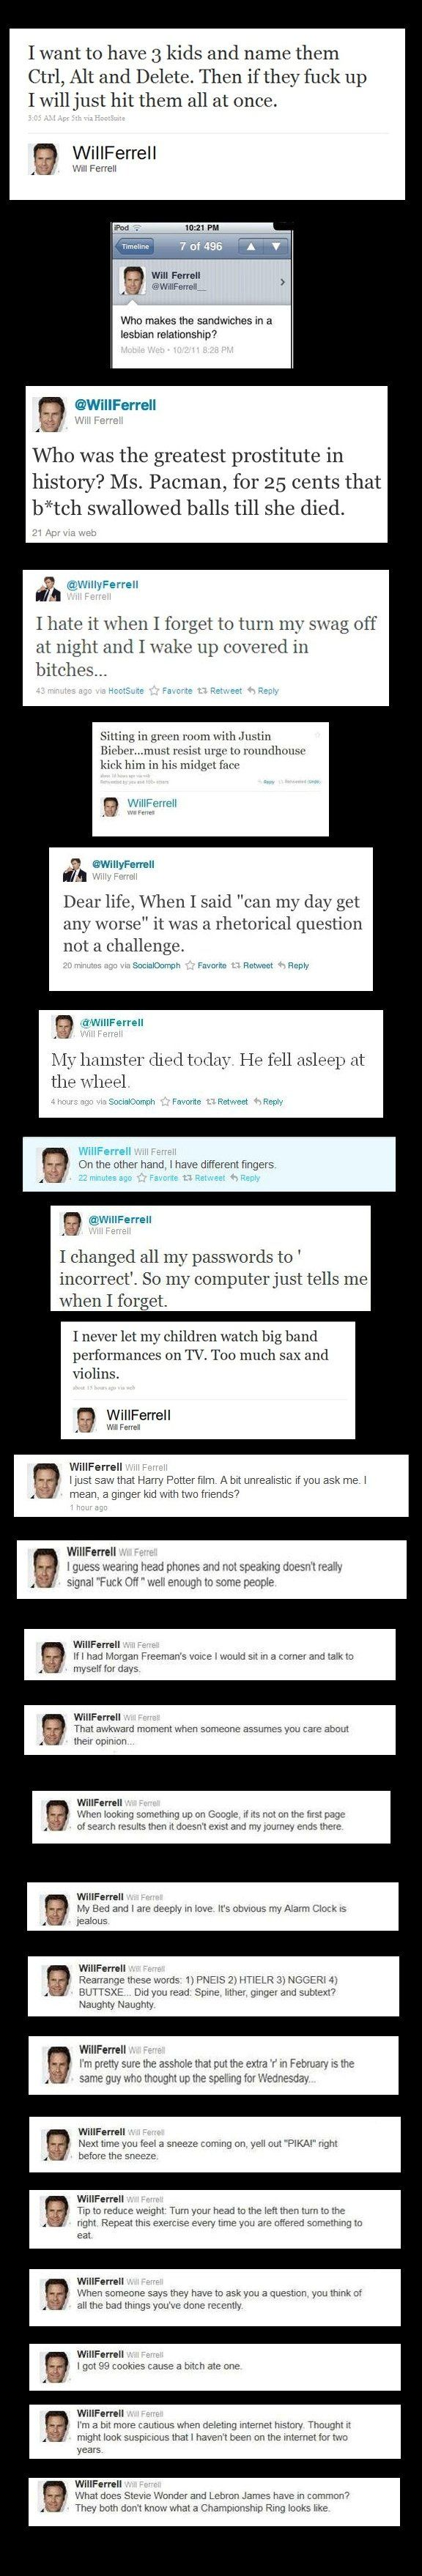 I don't even like this guy, but some of these are really funny. Pardon the language...it's Will Ferrell